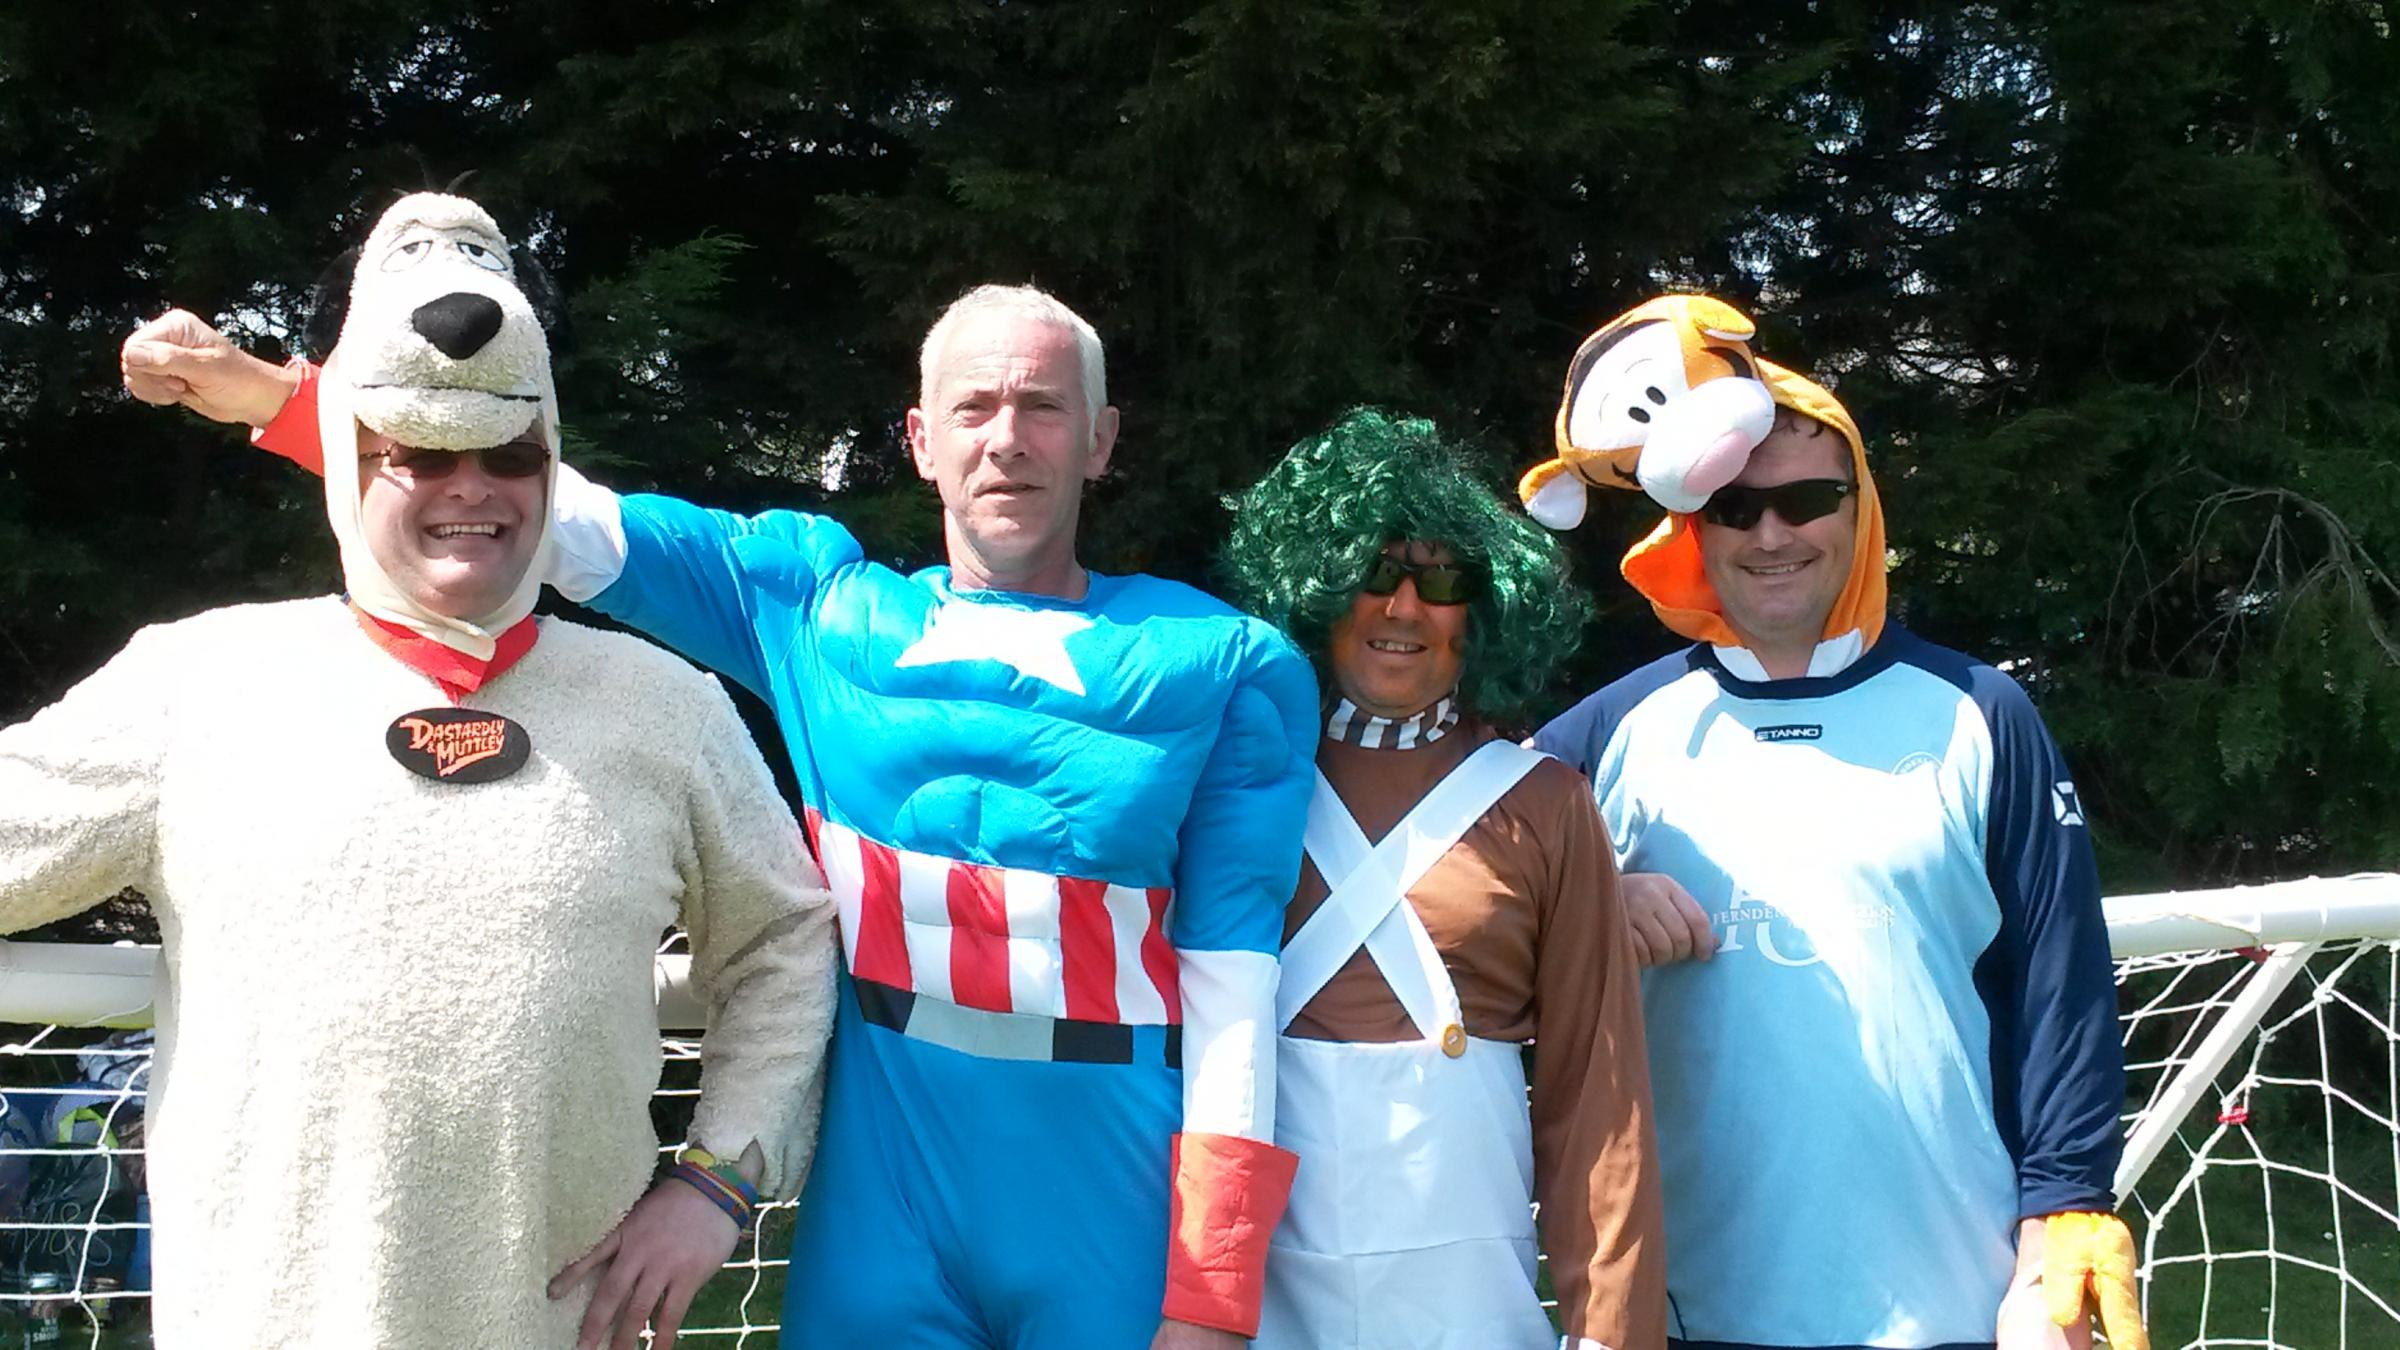 North Baddesley Vets football team members donned fancy dress for the penalty shoot-out competition